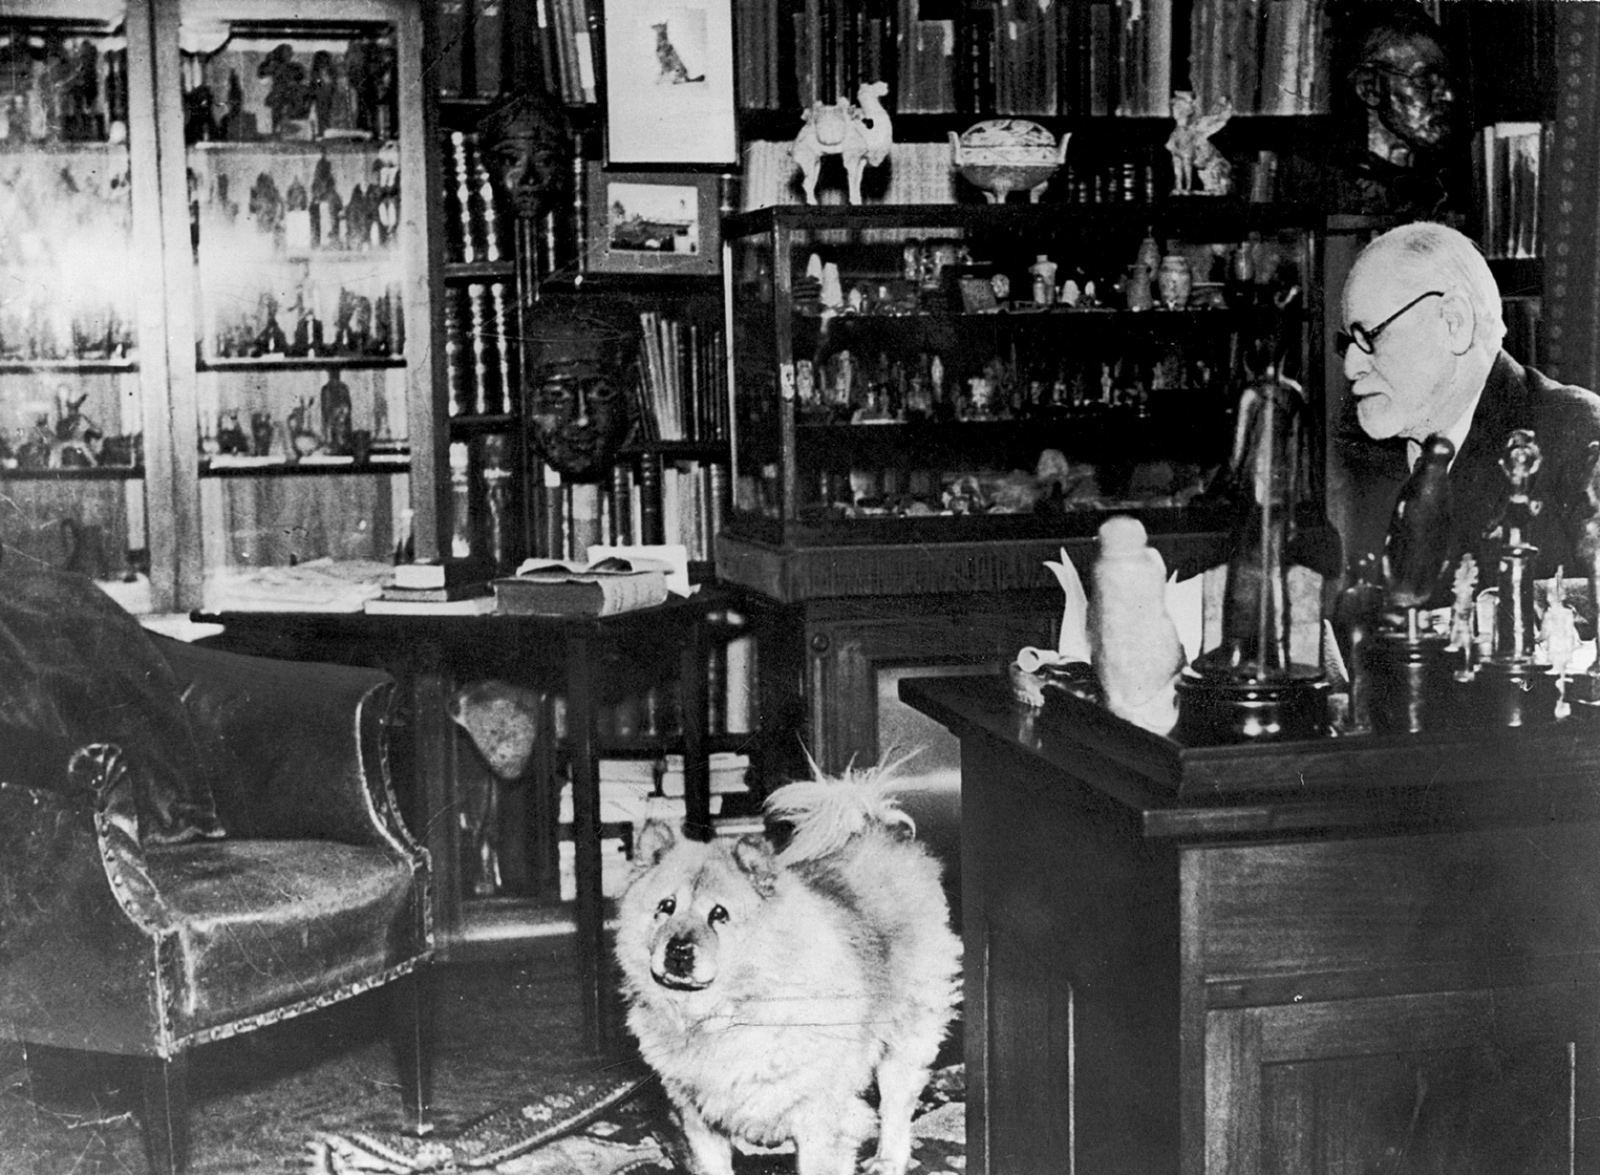 Sigmund Freud in his consulting room, Vienna, 1937